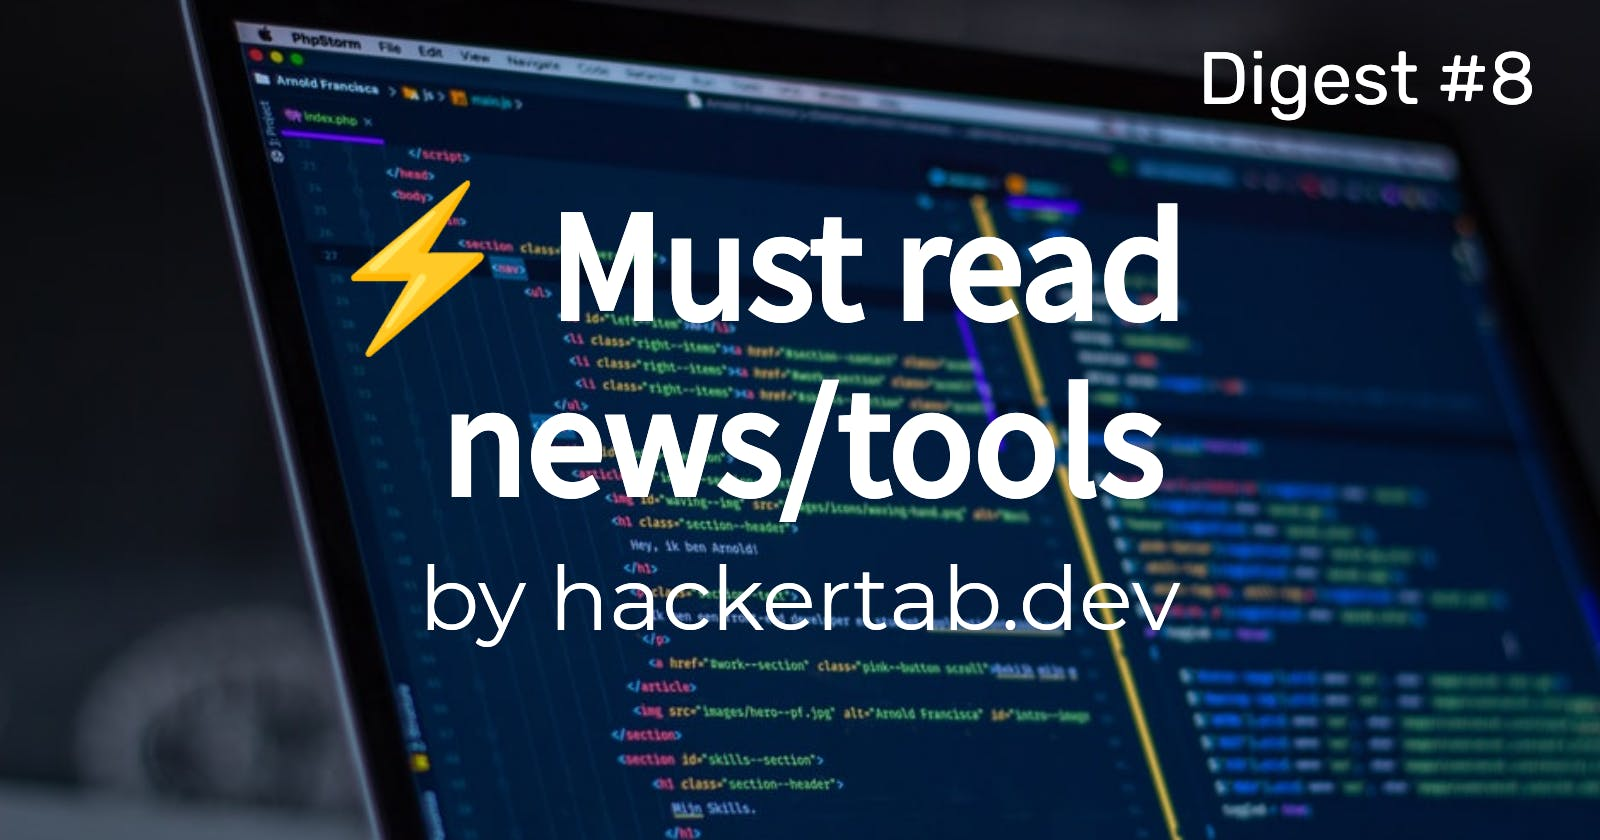 ⚡ Must read Tech news/tools of the day - Digest #8